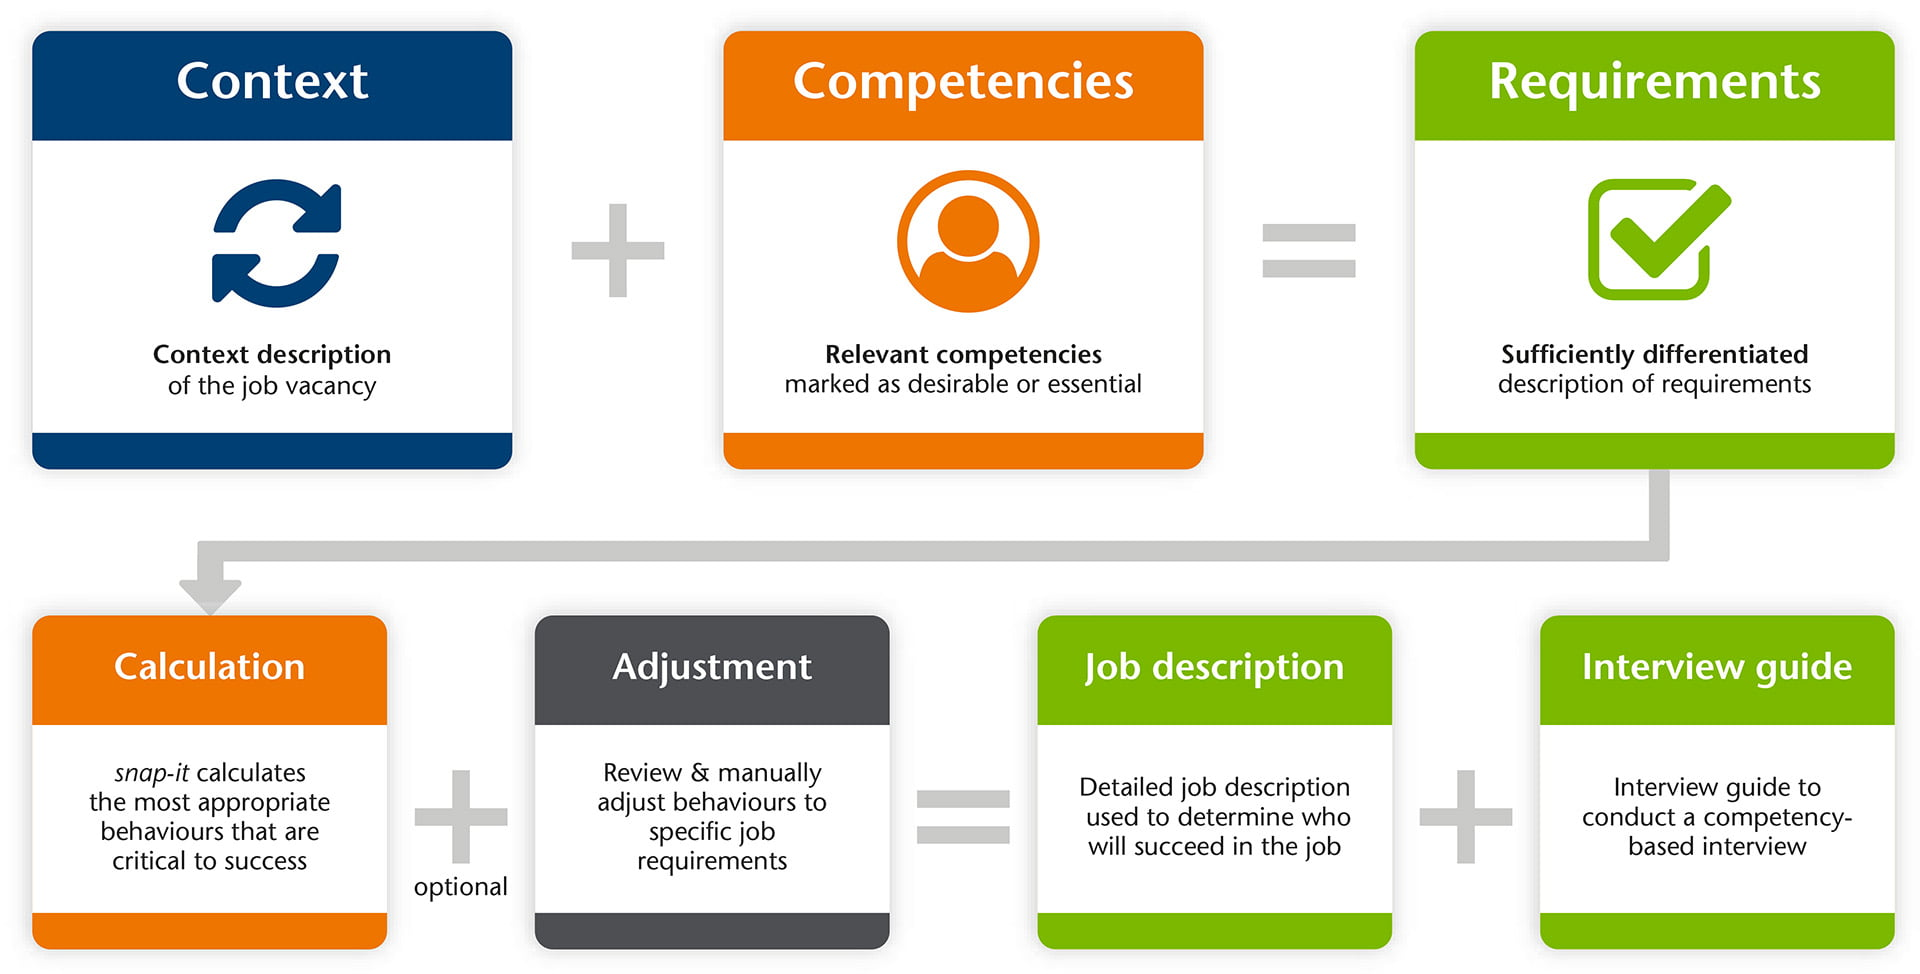 Enhanced online tool makes it easy for recruiters to conduct hassle-free competency-based recruitment